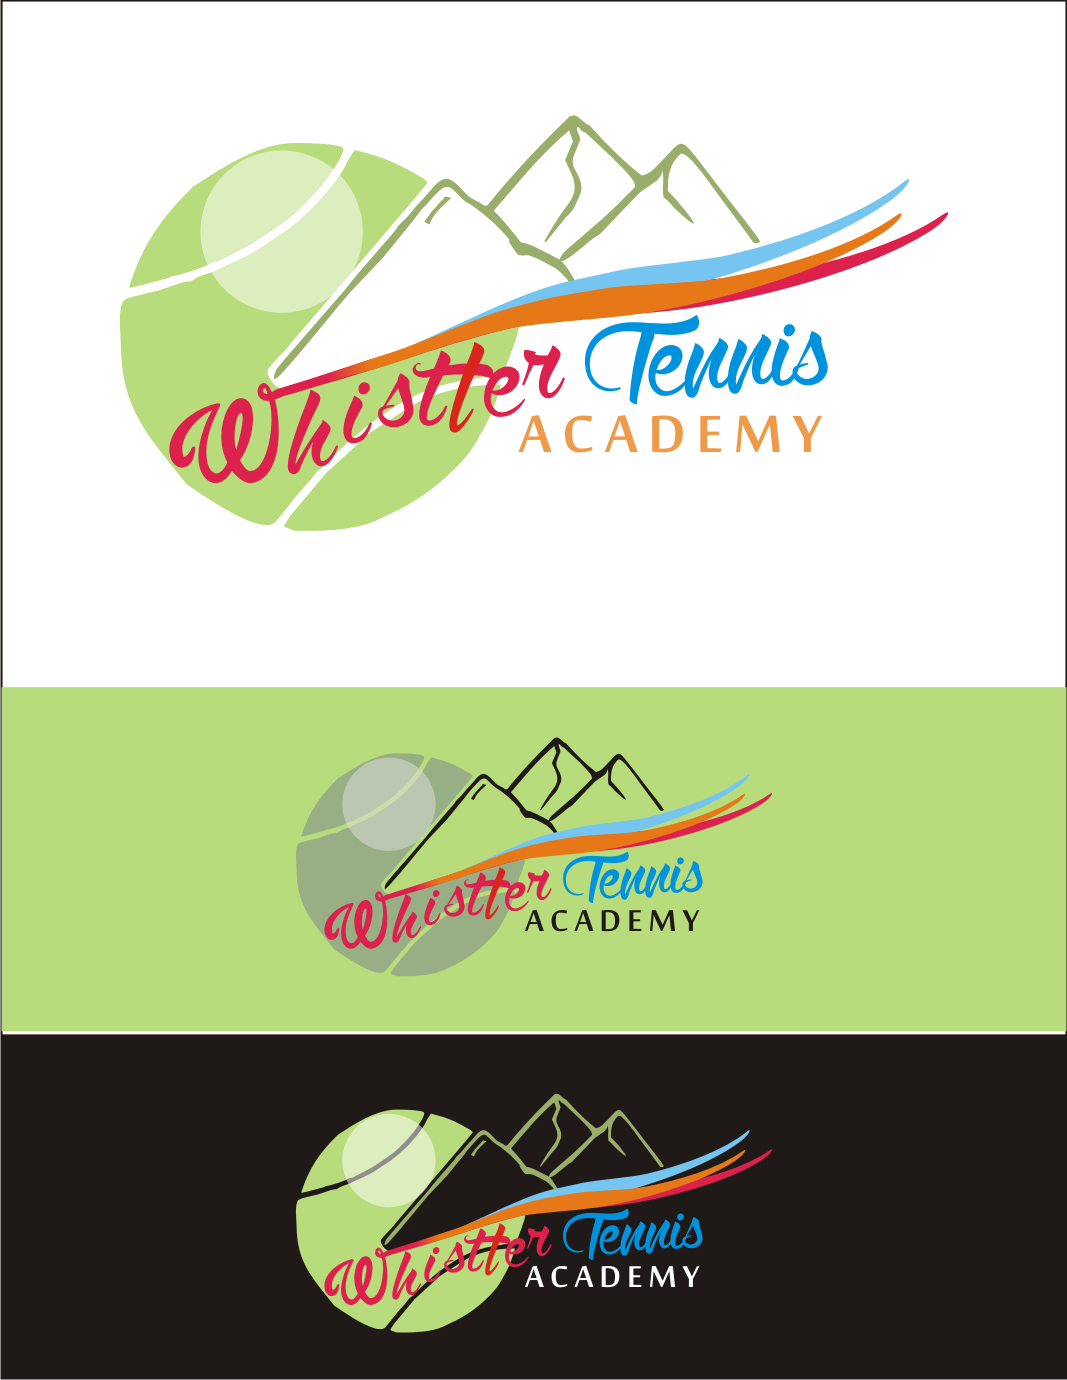 Logo Design by Nthus Nthis - Entry No. 59 in the Logo Design Contest Imaginative Logo Design for Whistler Tennis Academy.